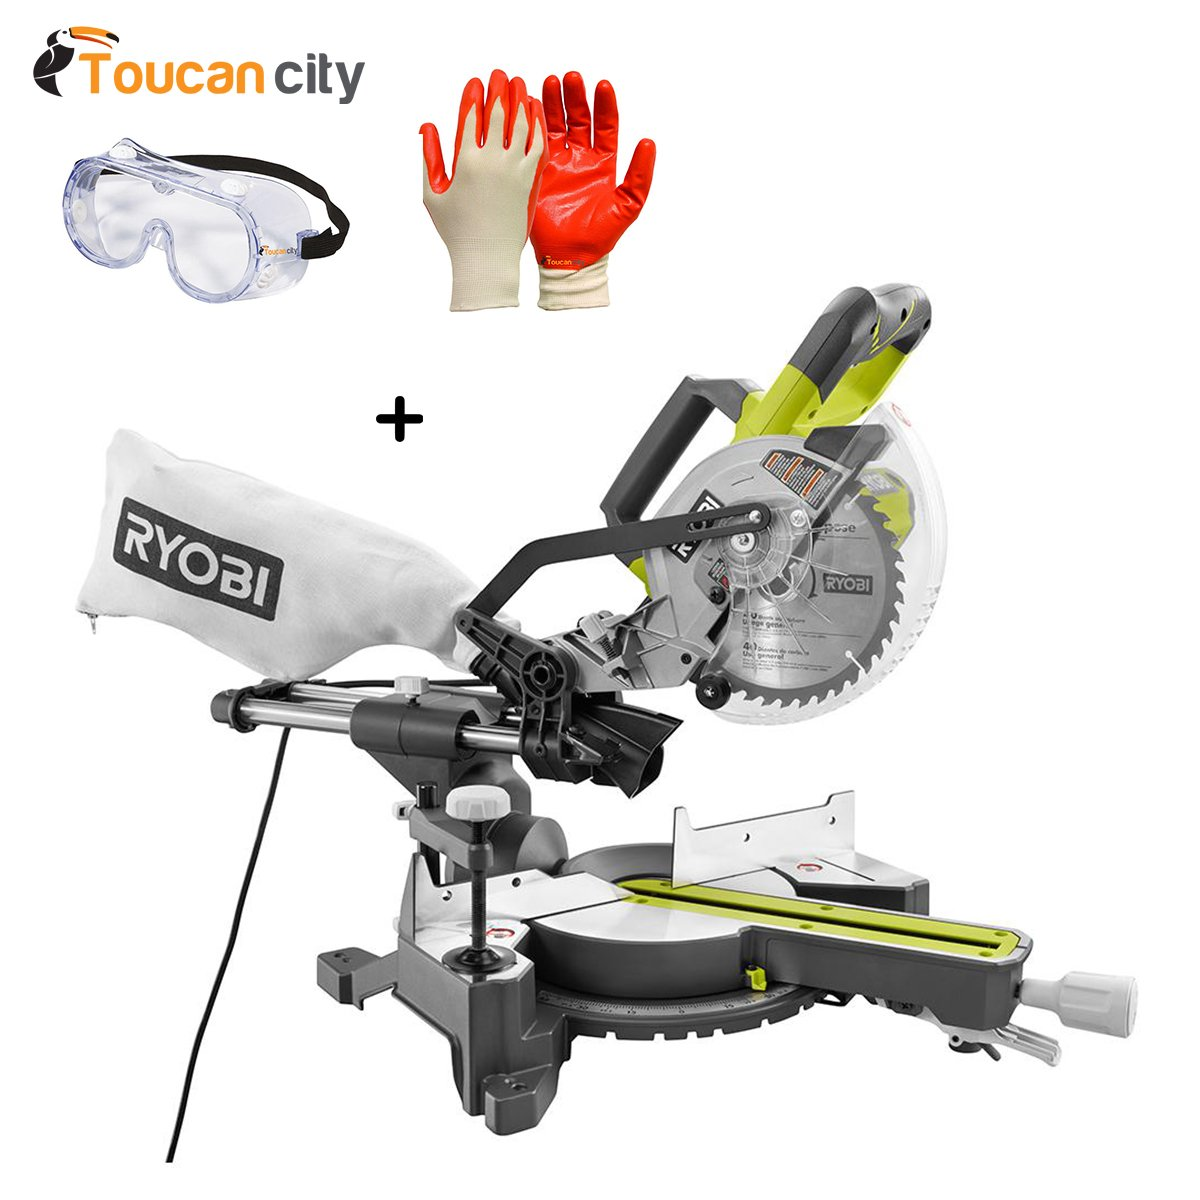 Ryobi 10 Amp 7-1/4'' Miter Saw TSS701 and Toucan City Safety Goggles and Nitrile Dip Gloves (5-Pack)